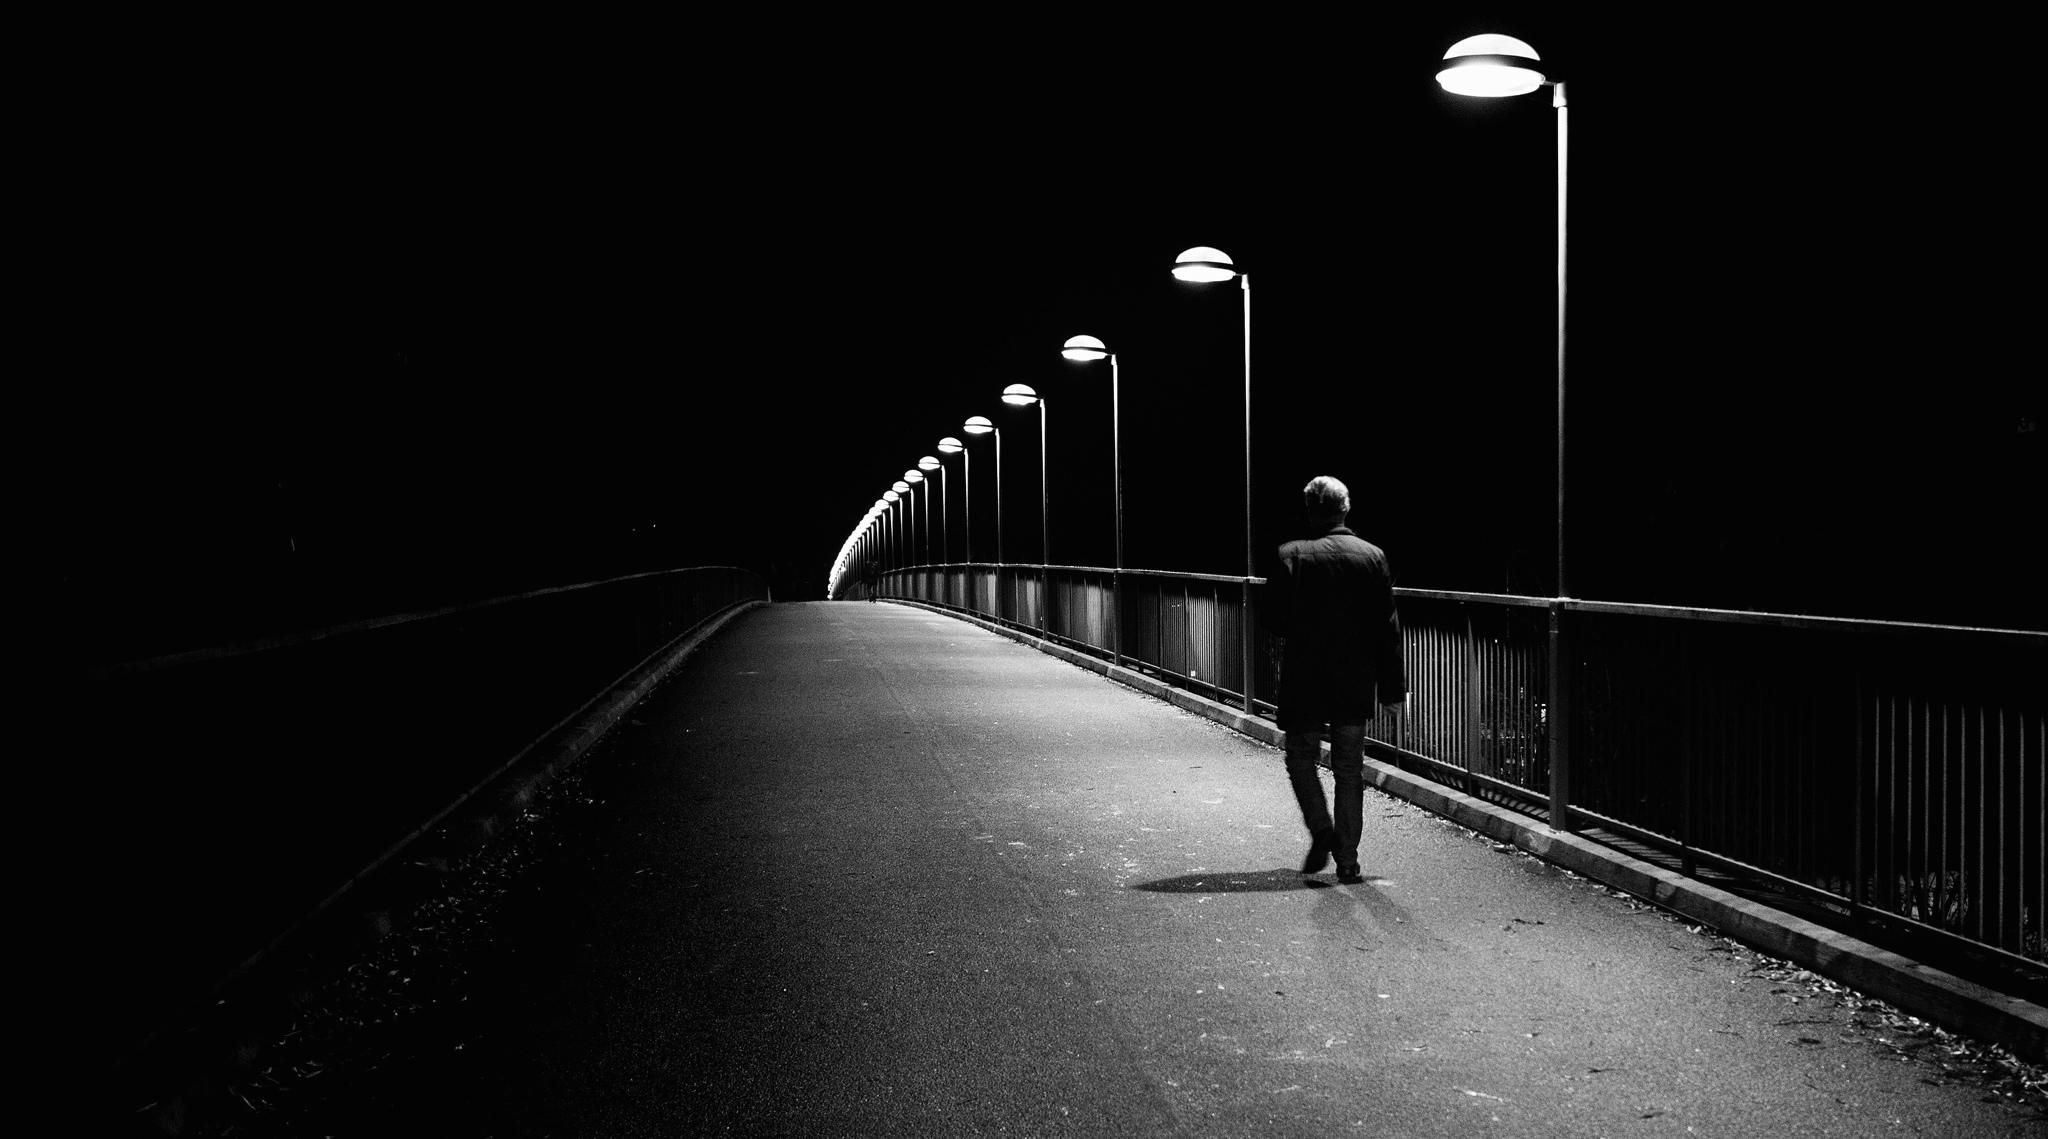 Alone man wallpapers top free alone man backgrounds